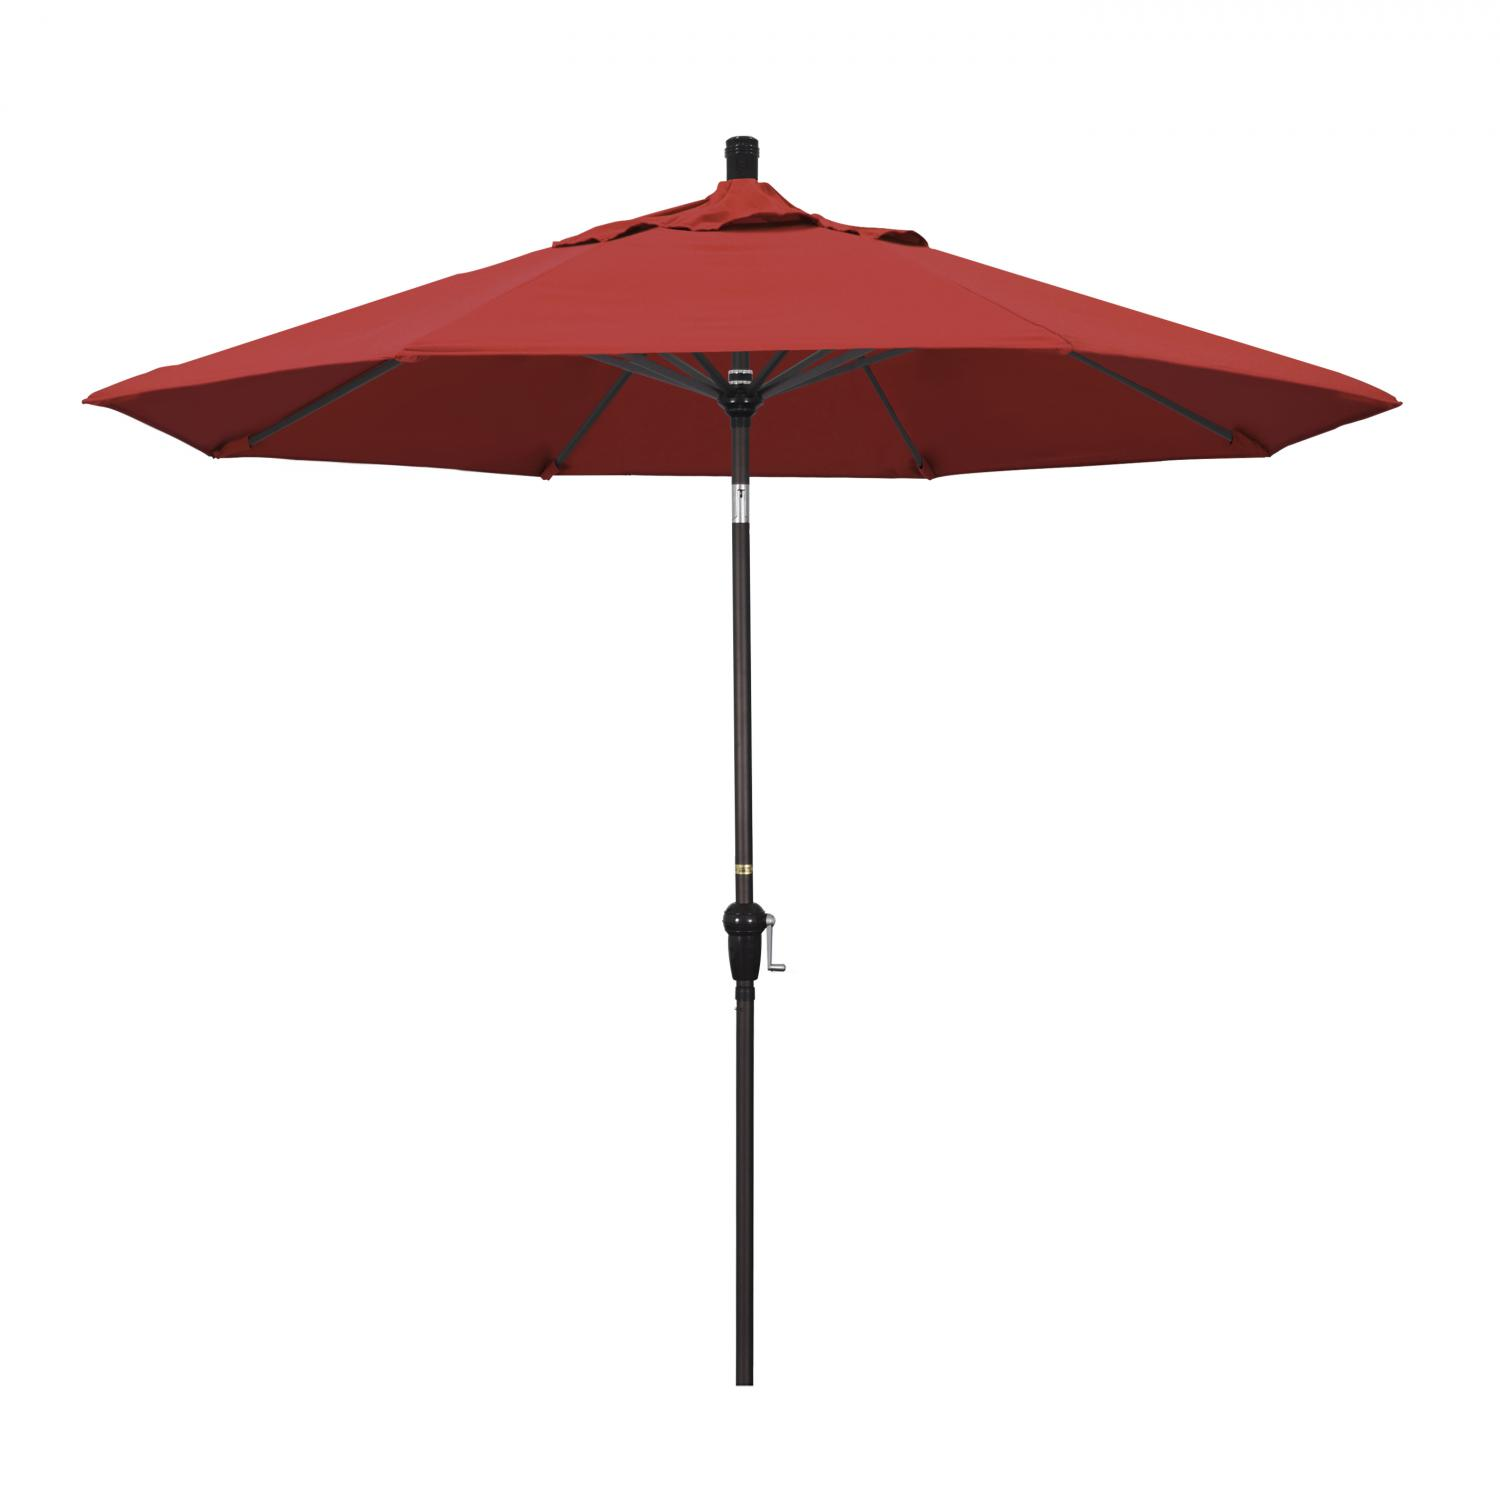 California Umbrella 9 Ft. Octagonal Aluminum Auto Tilt Patio Umbrella W/ Crank Lift & Aluminum Ribs - Bronze Frame / Olefin Red Canopy